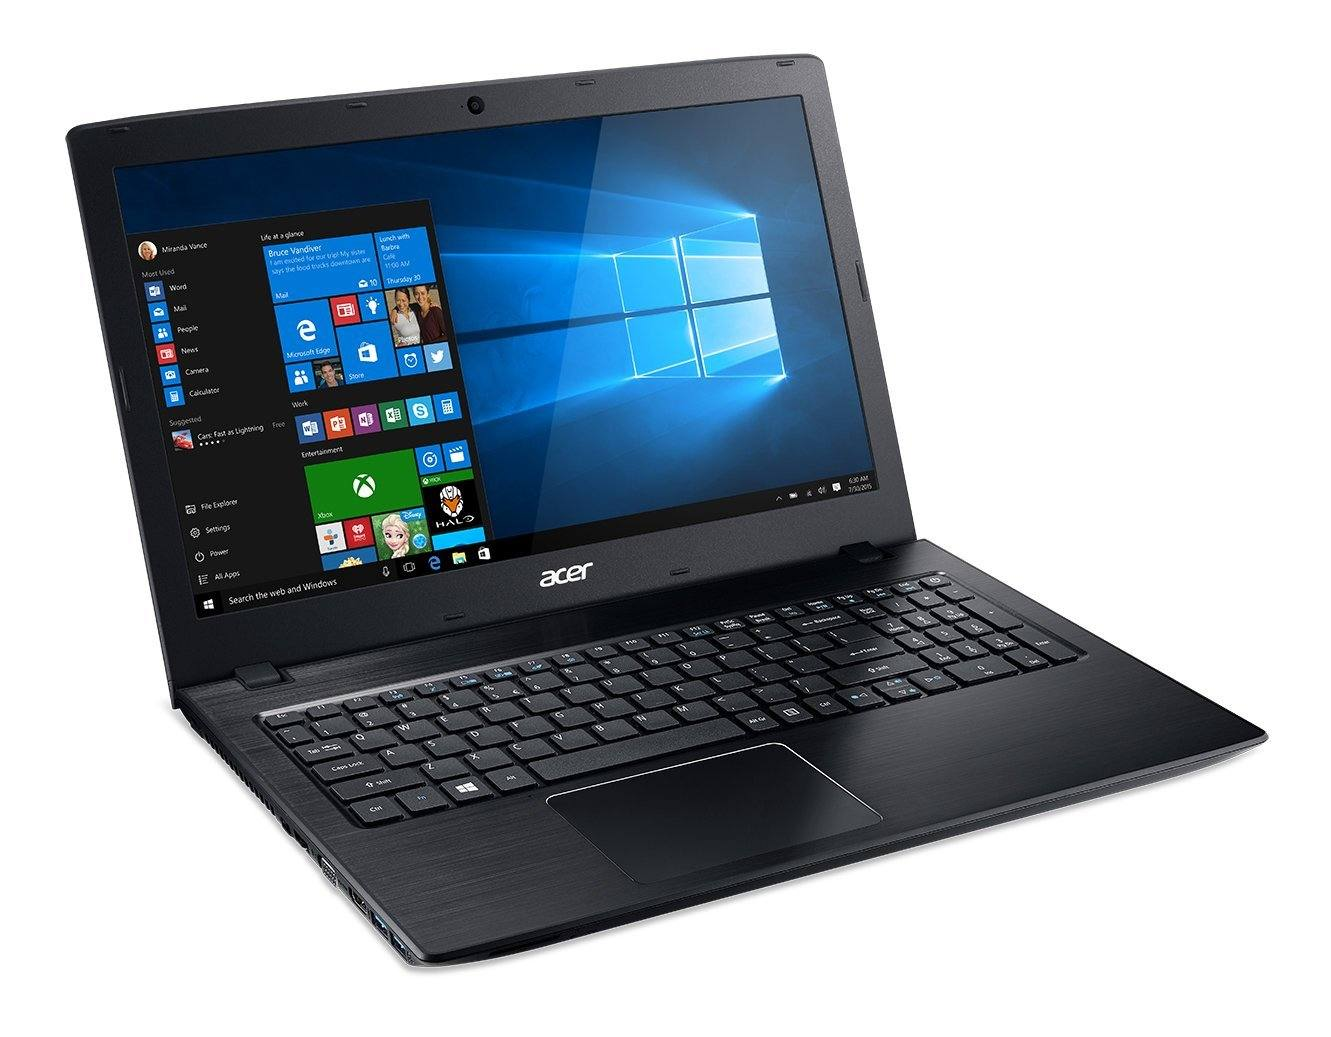 Should I buy a netbook or laptop for college?